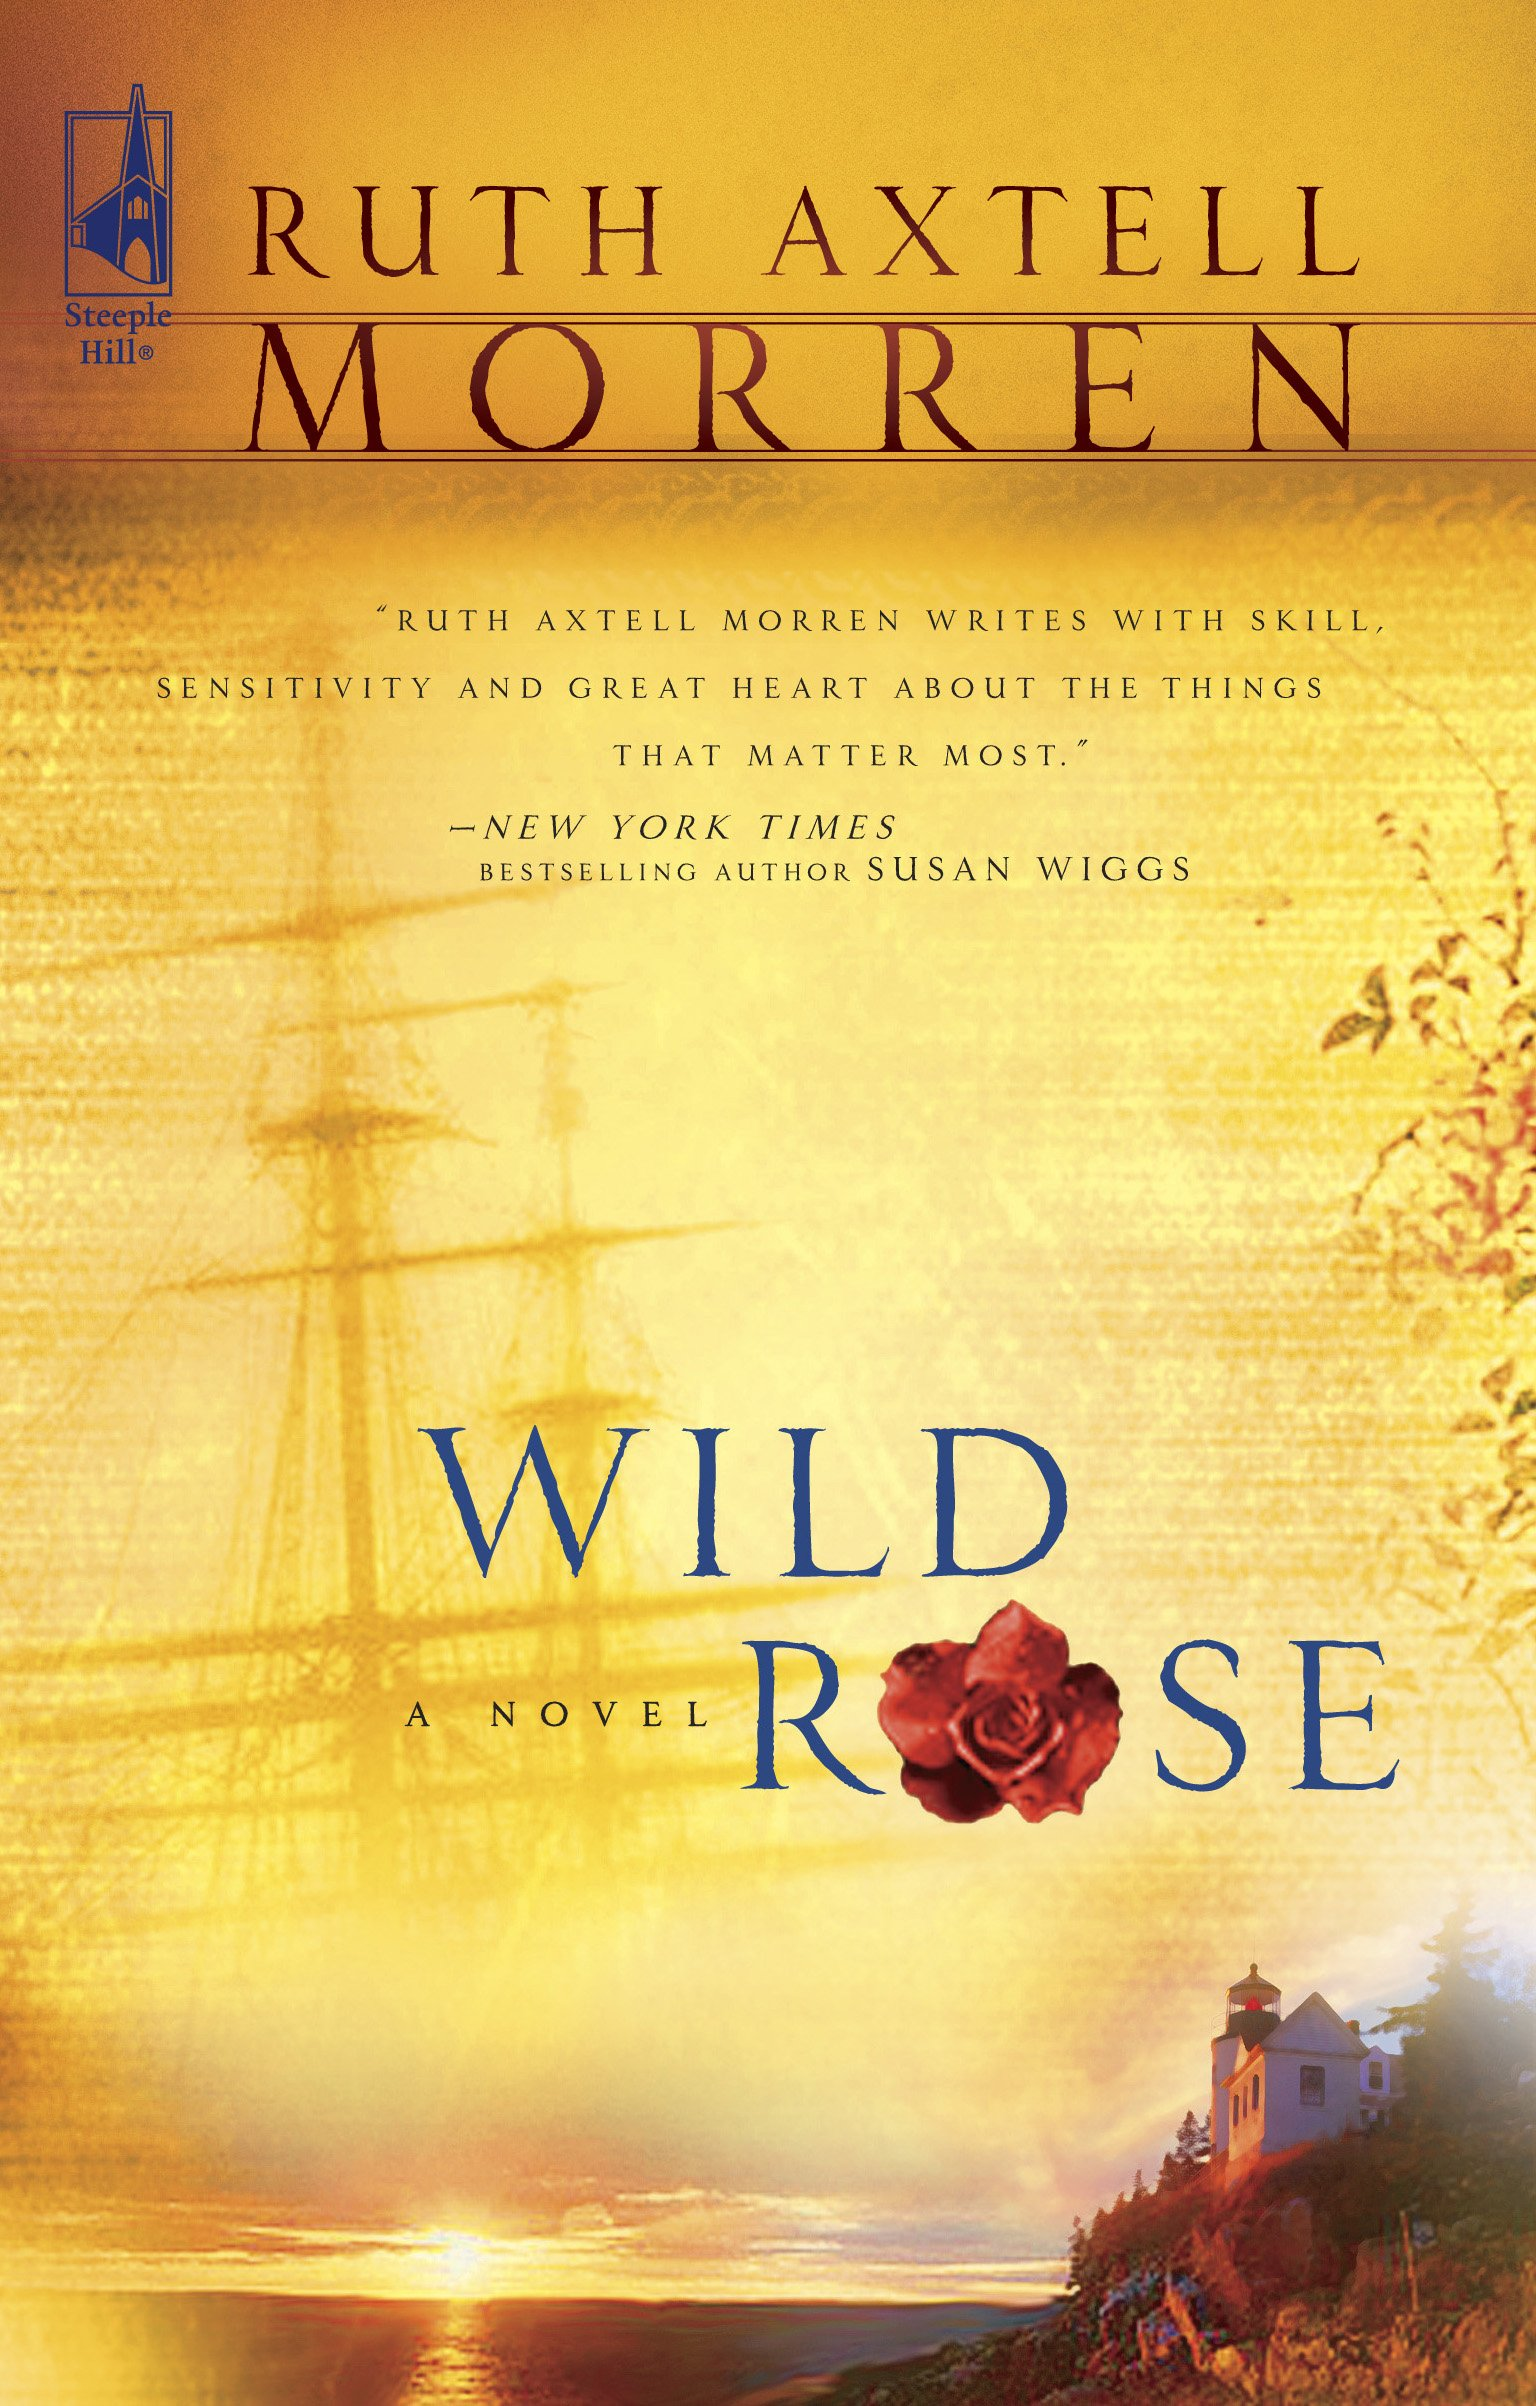 Read Online Wild Rose (Wild Rose Series #1) (Steeple Hill Women's Fiction #15) pdf